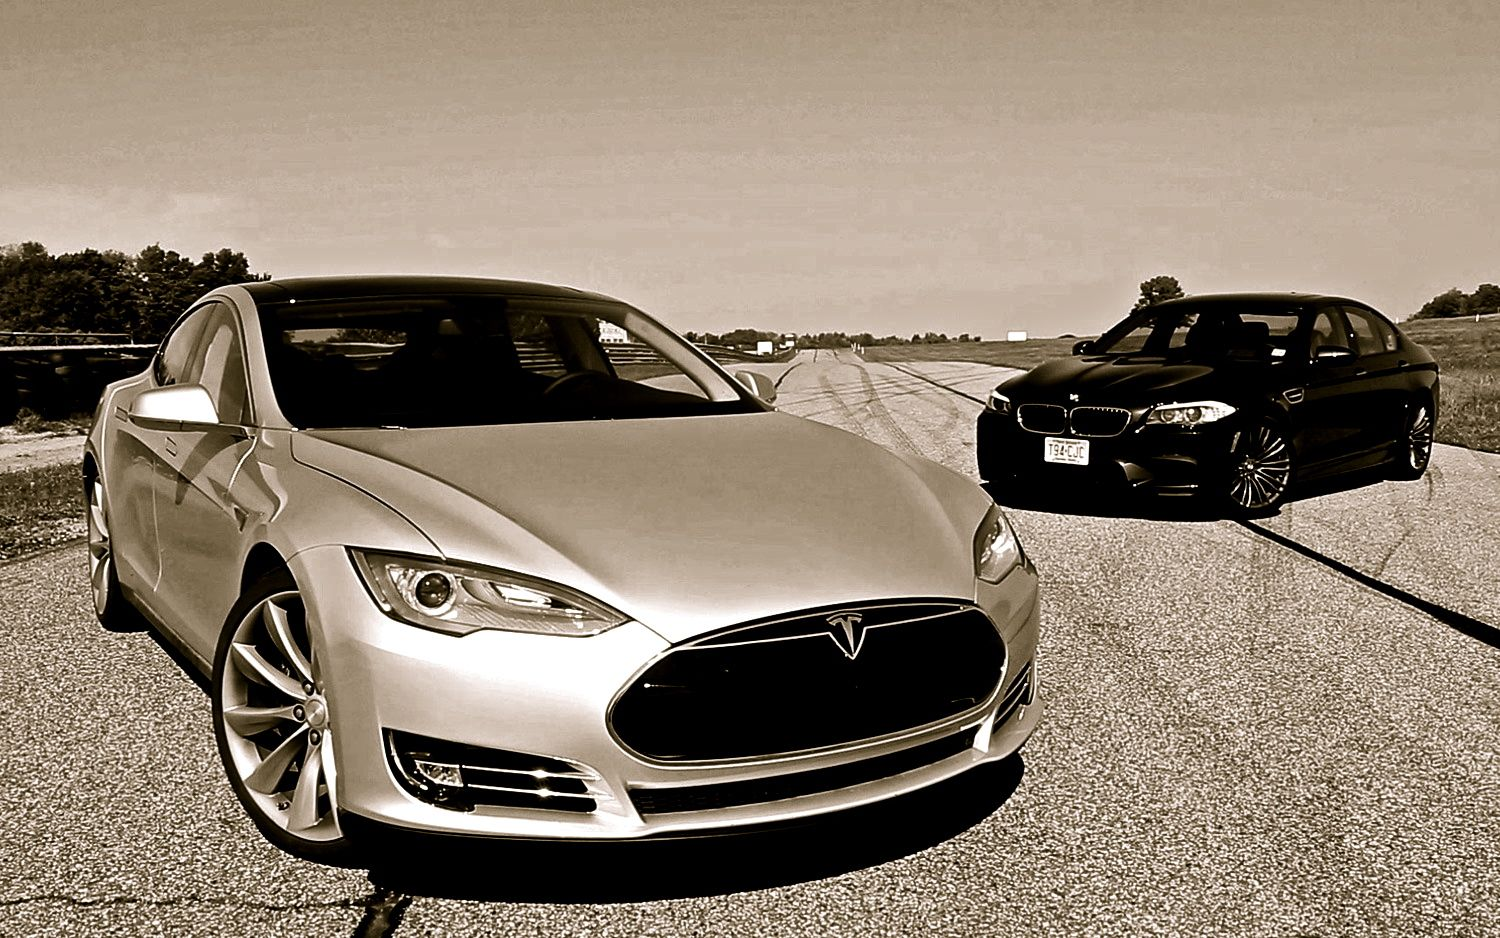 F10-BMW-M5-vs-Tesla-Model-S-1